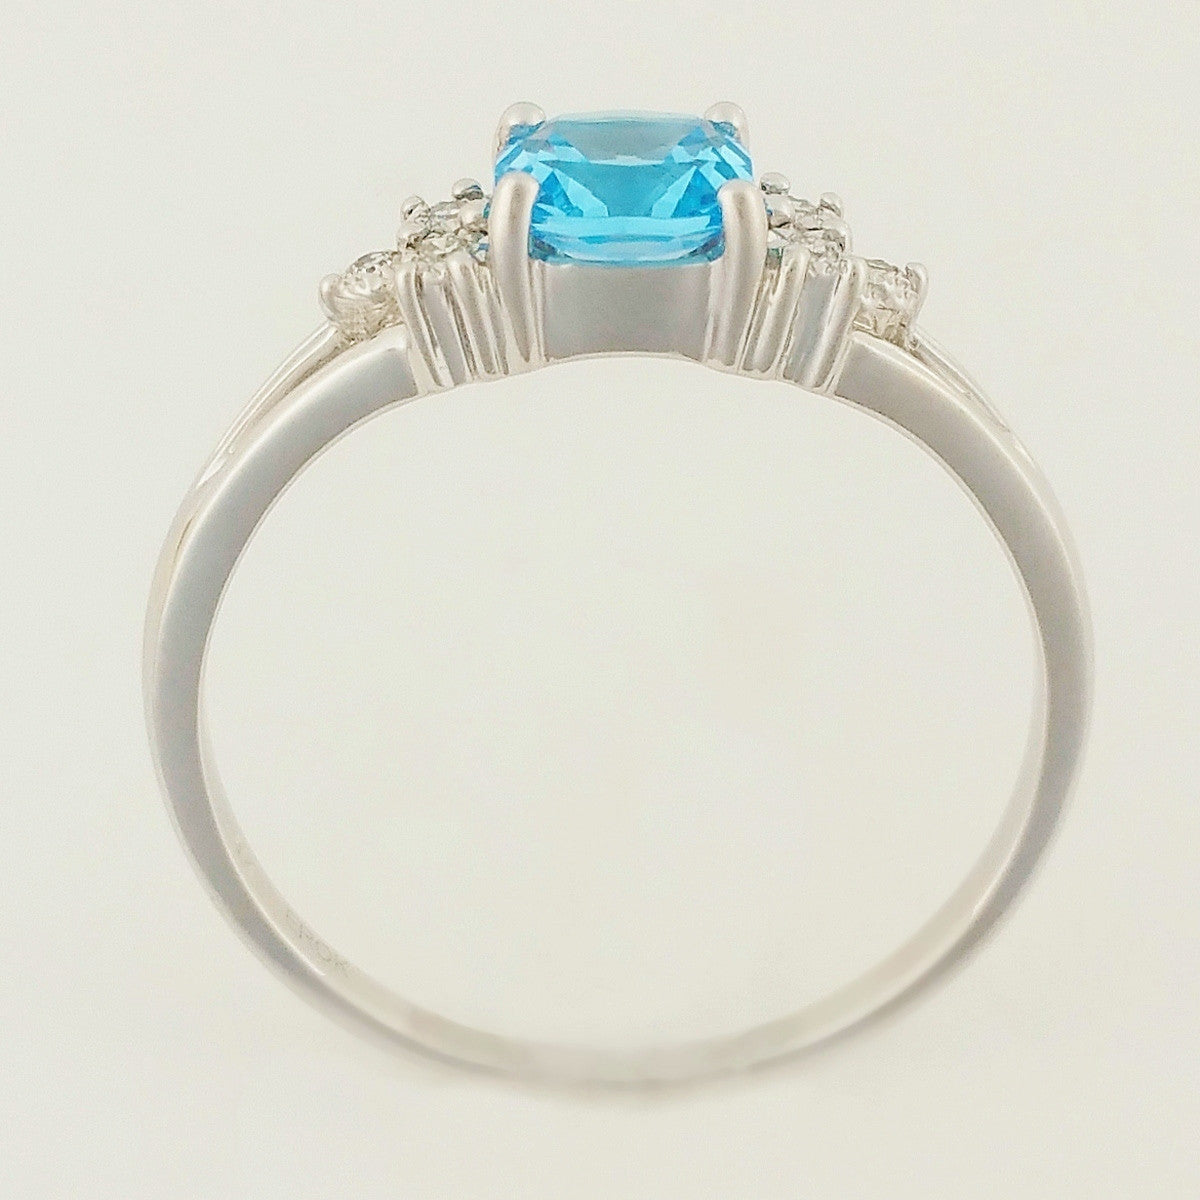 9K SOLID WHITE GOLD 0.60CT NATURAL BLUE TOPAZ RING WITH 6 DIAMONDS.